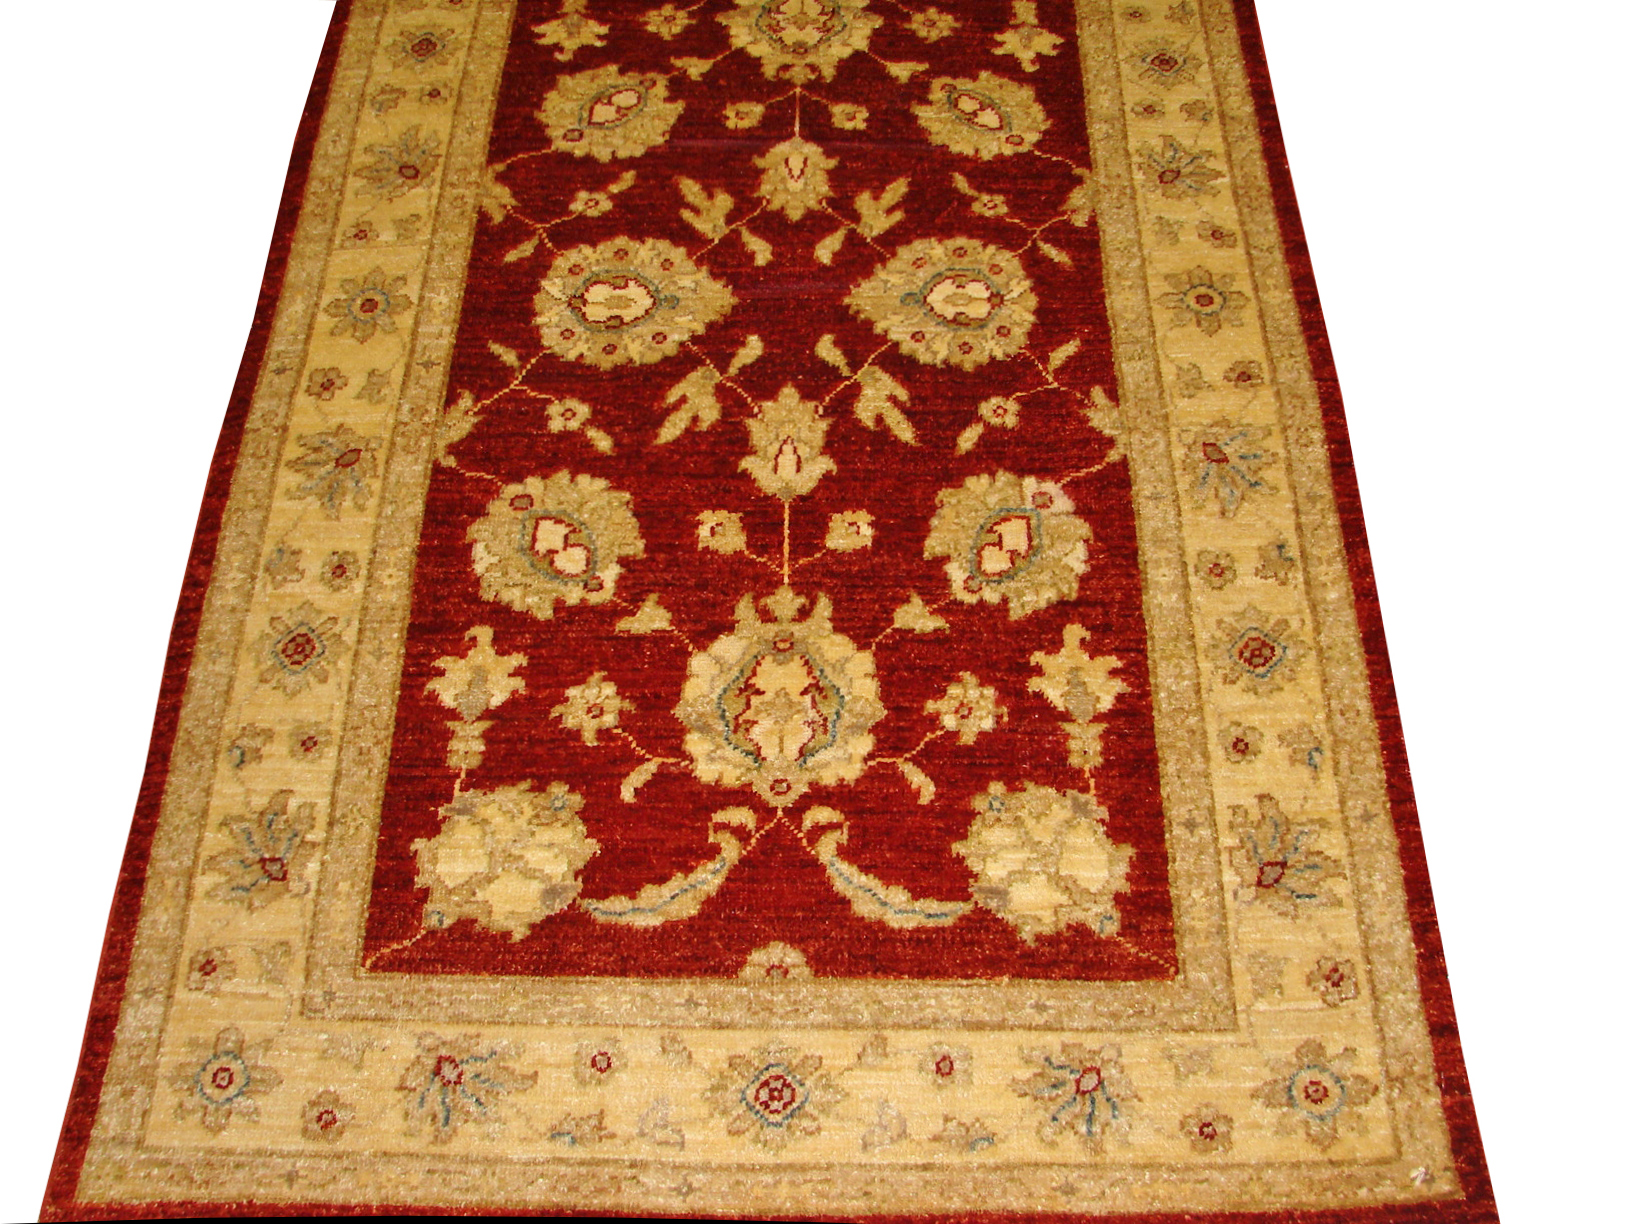 3x5 Peshawar Hand Knotted Wool Area Rug - MR13379